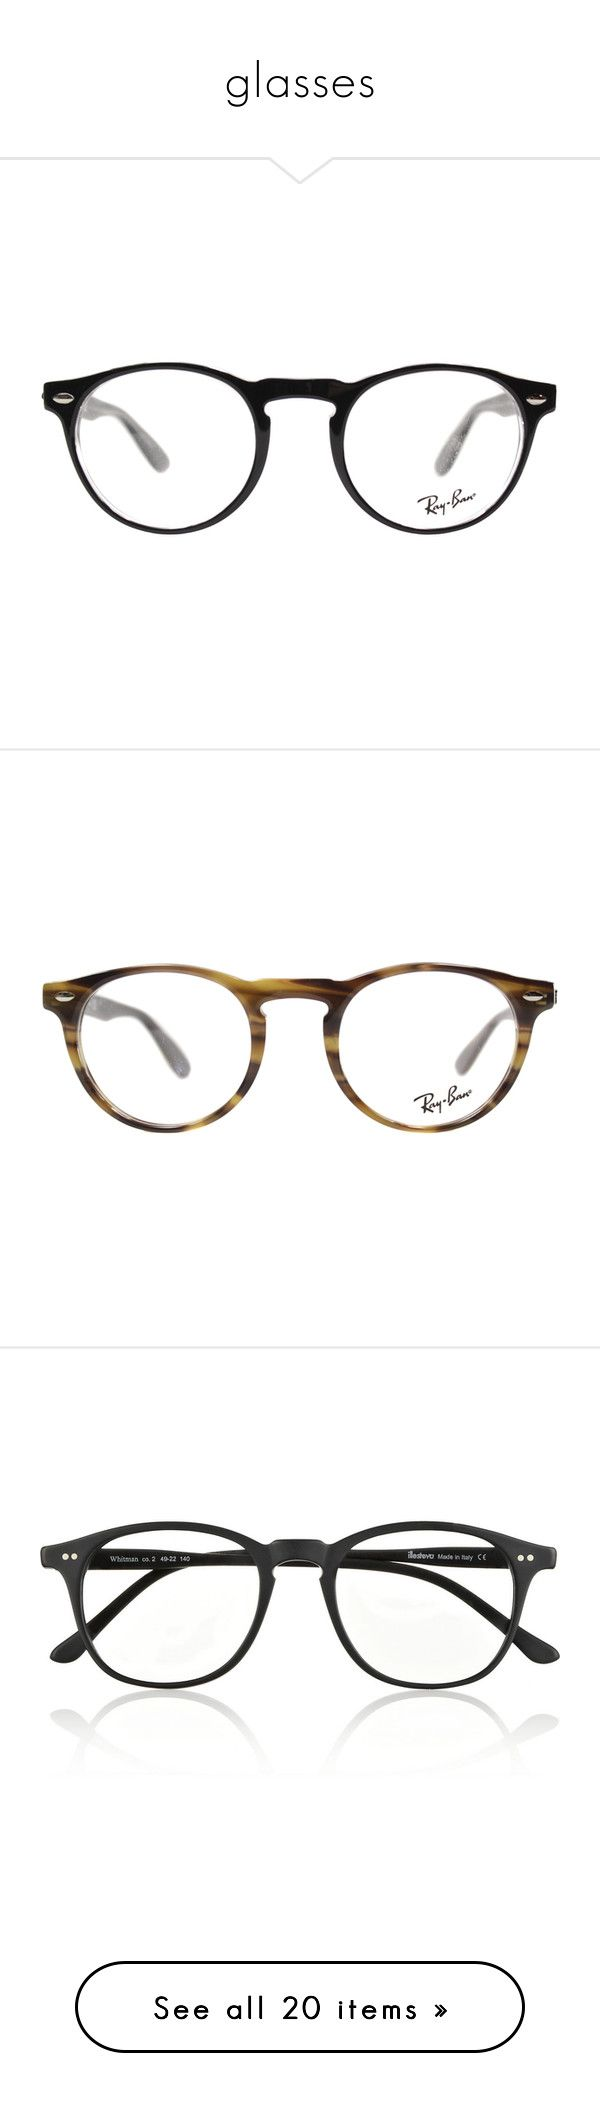 glasses by sebende ❤ liked on Polyvore featuring accessories, eyewear, eyeglasses, glasses, black, sunglasses, crystal glasses, oval eyeglasses, ray ban eyewear and crystal eyeglasses